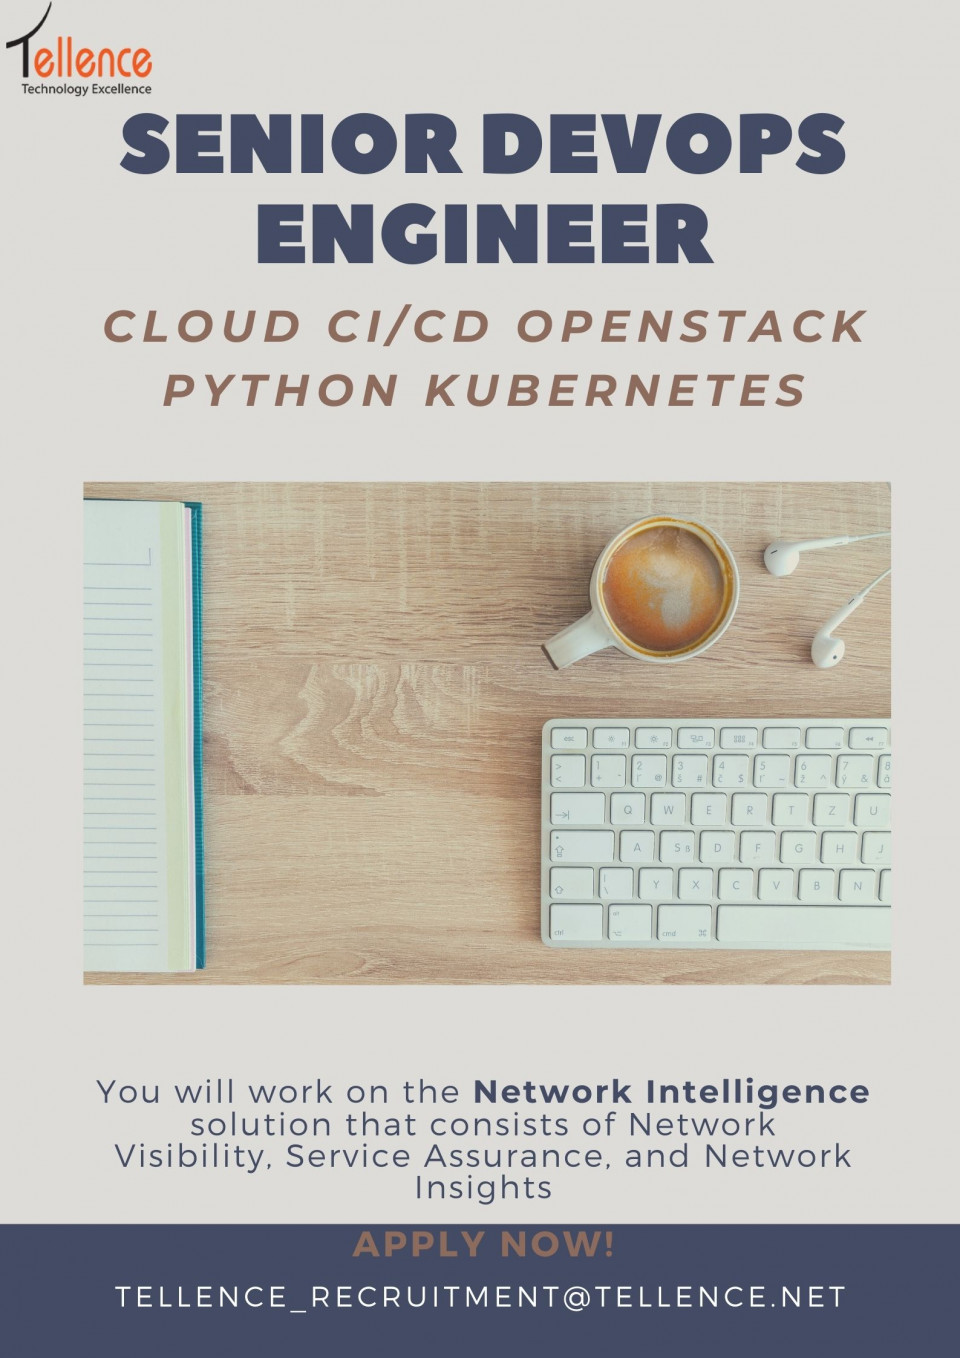 WE are looking for experienced DevOps Engineerts to join our team.